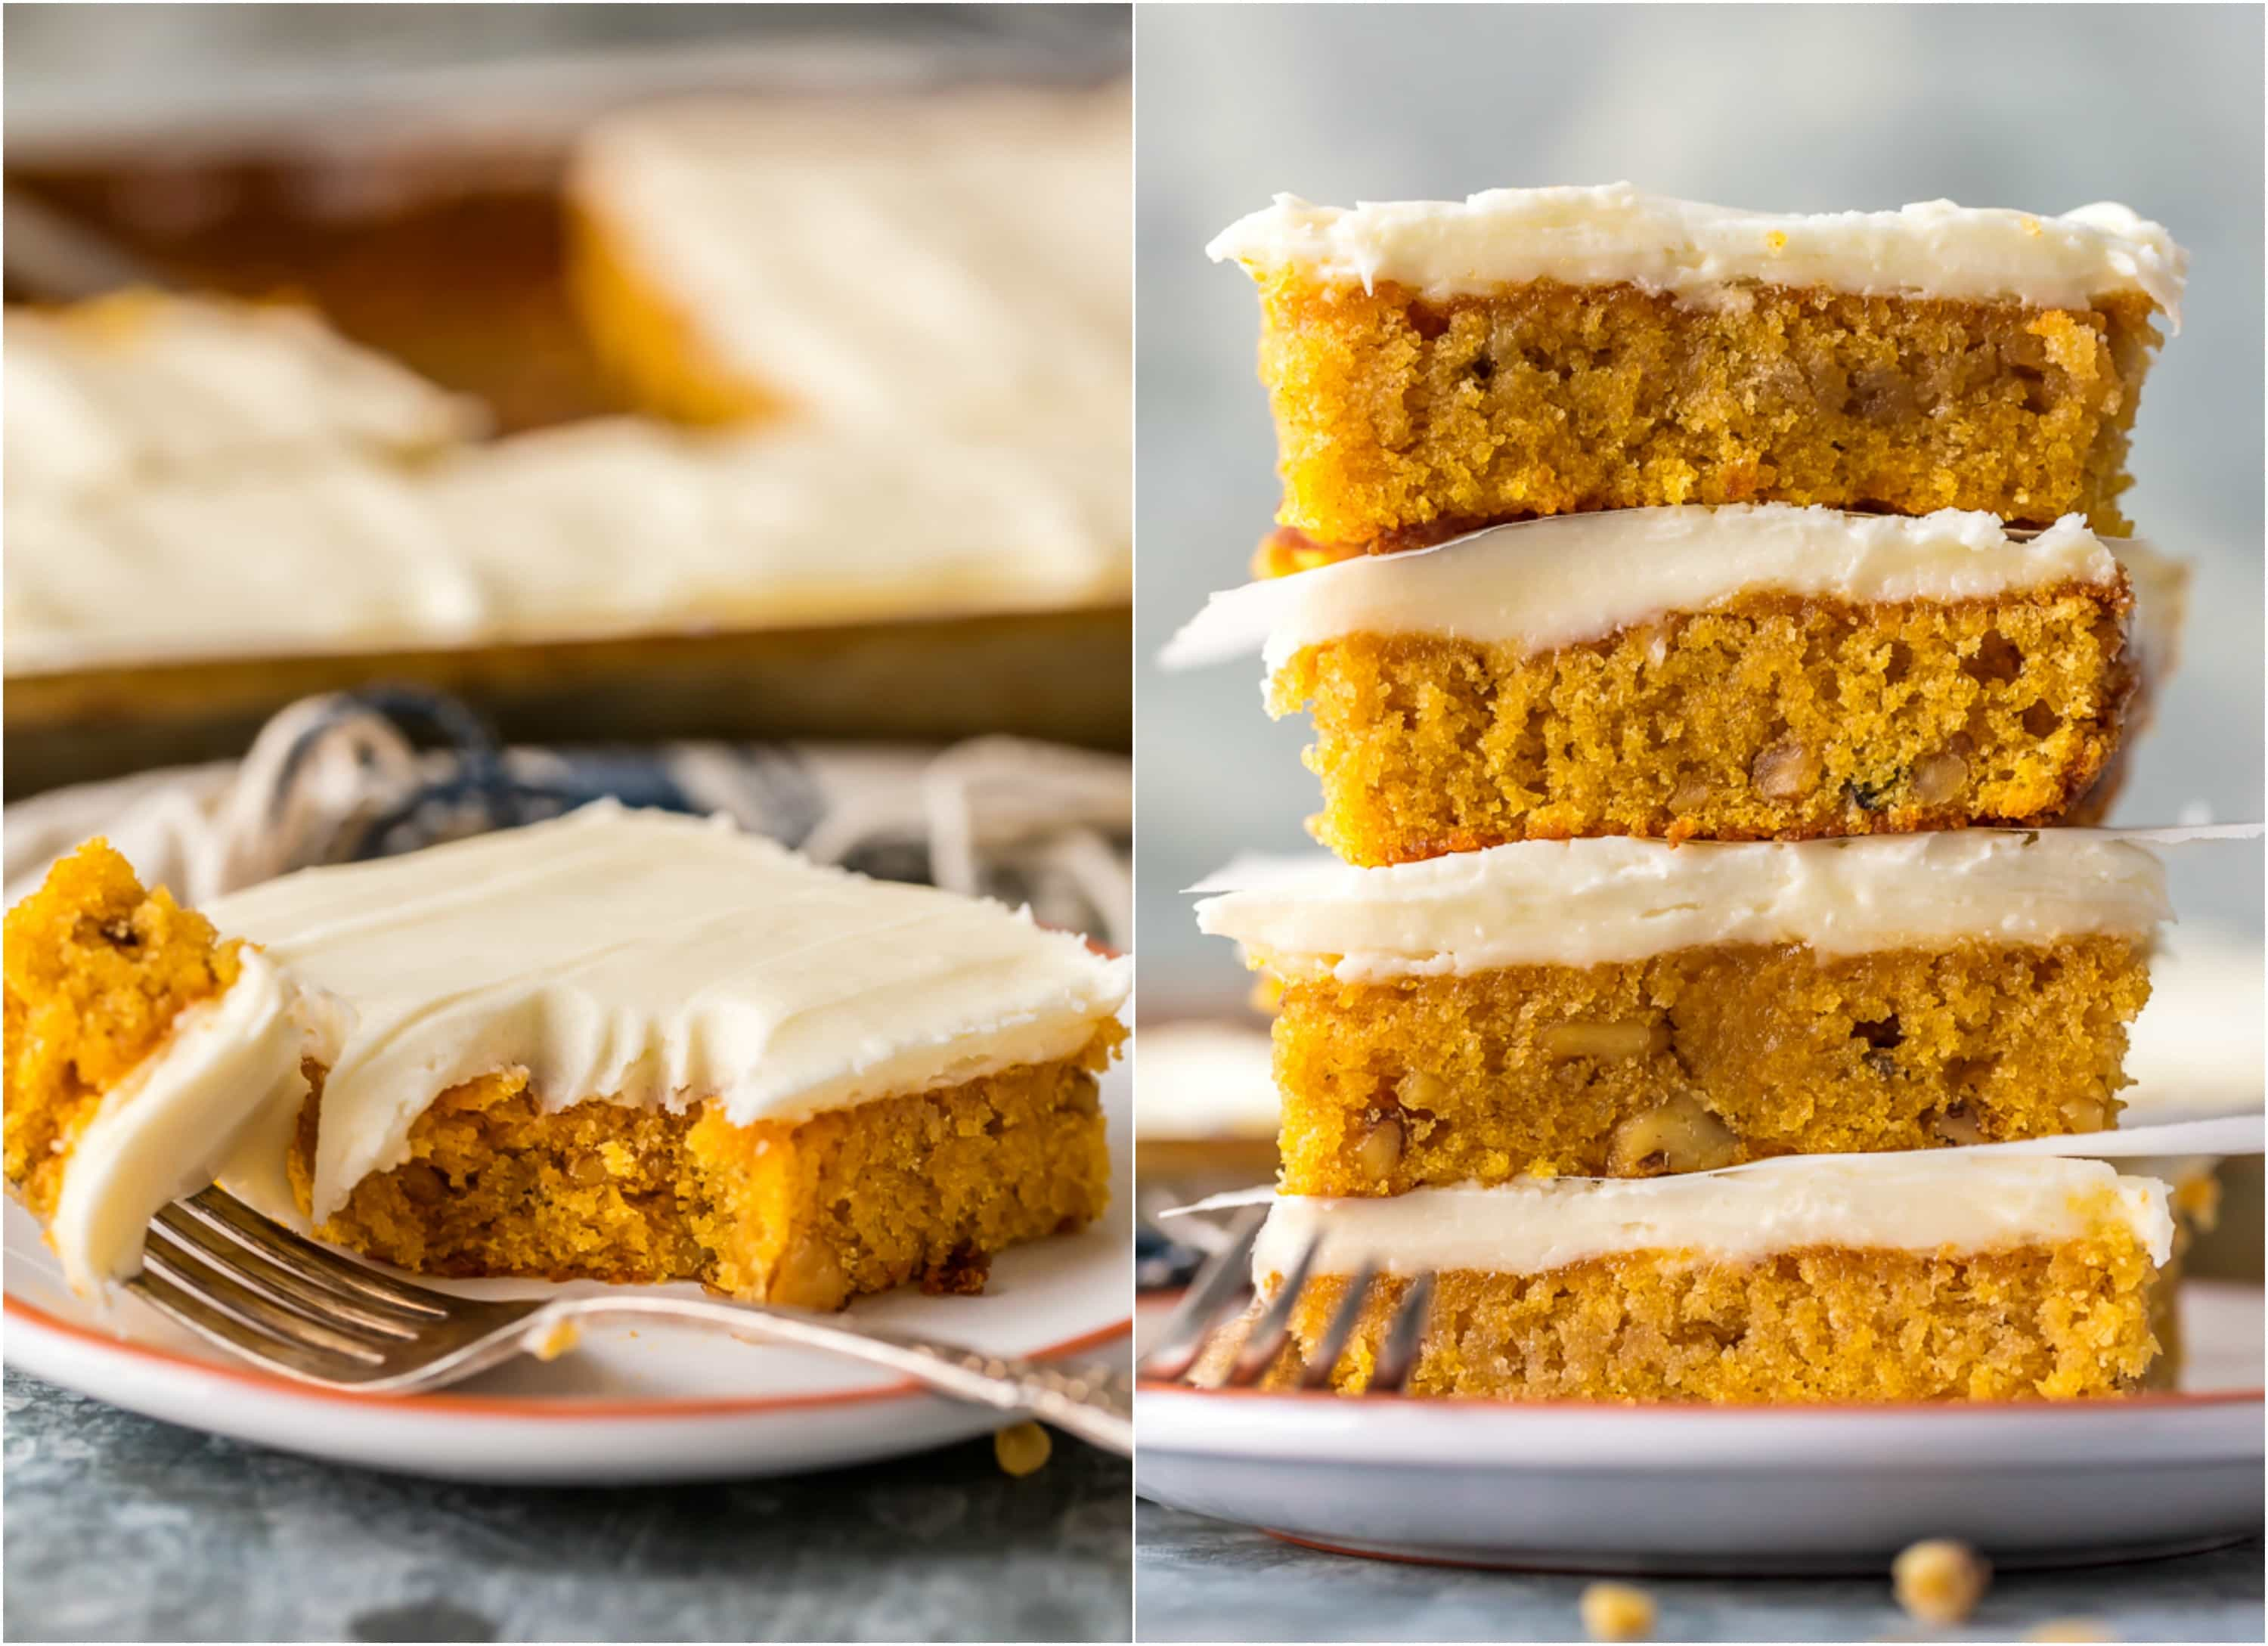 how to make carrot cake bars step by step photos